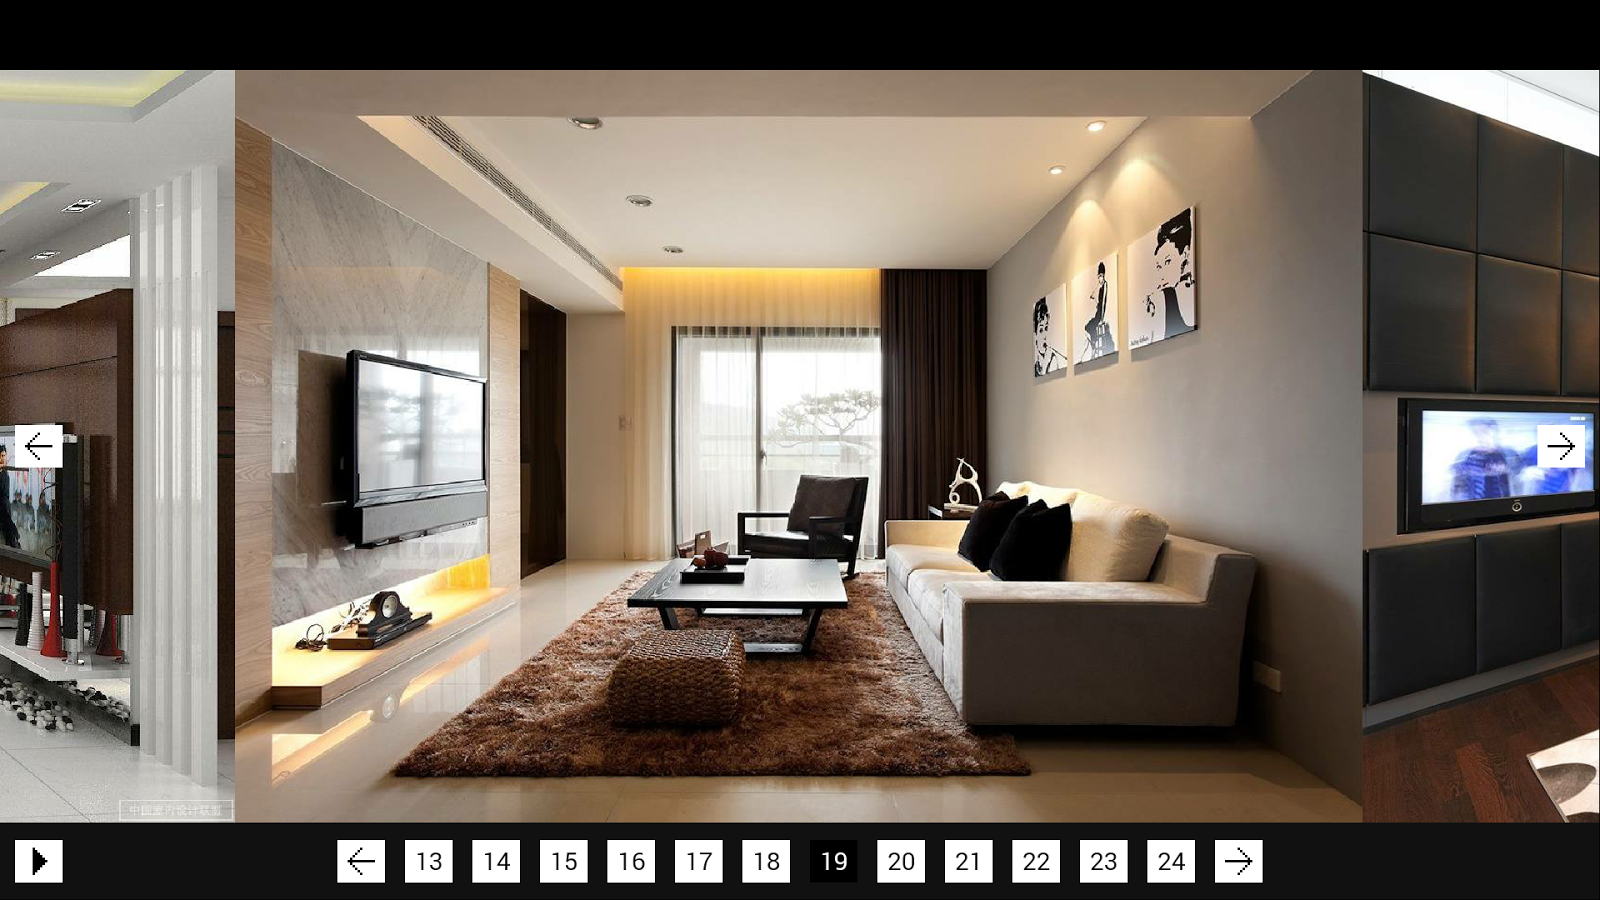 Home interior design android apps on google play - House interior designs ...